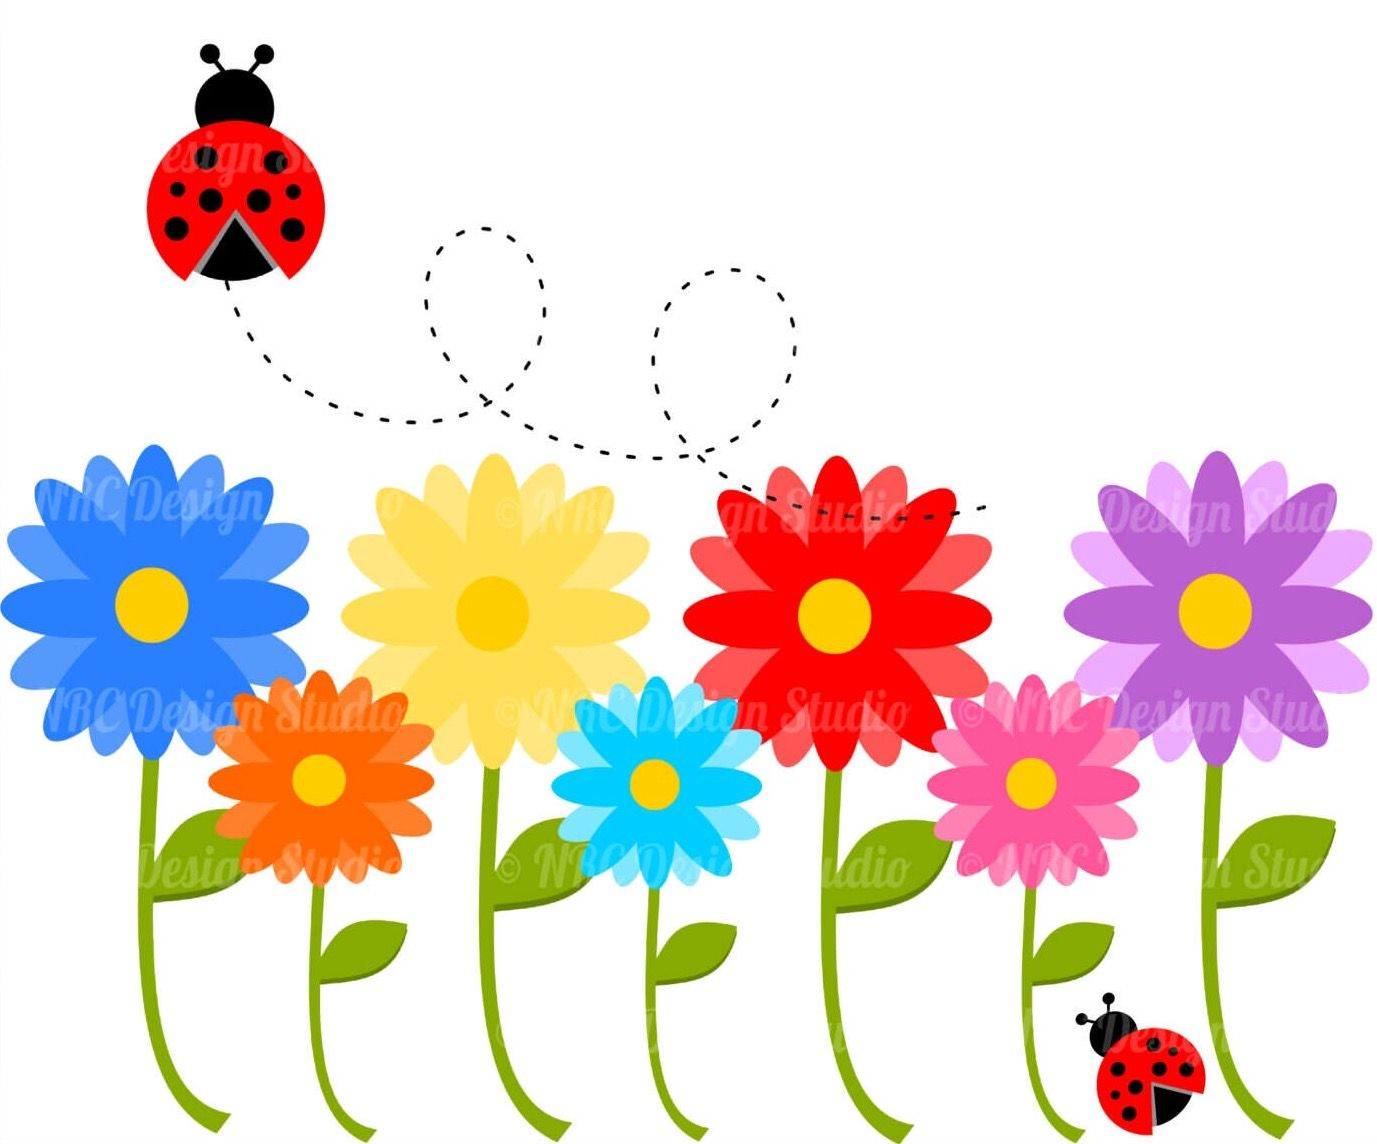 Flowers And Grass Png Picture Clipart - Spring Flowers Transparent  Background - Free Transparent PNG Clipart Images Download